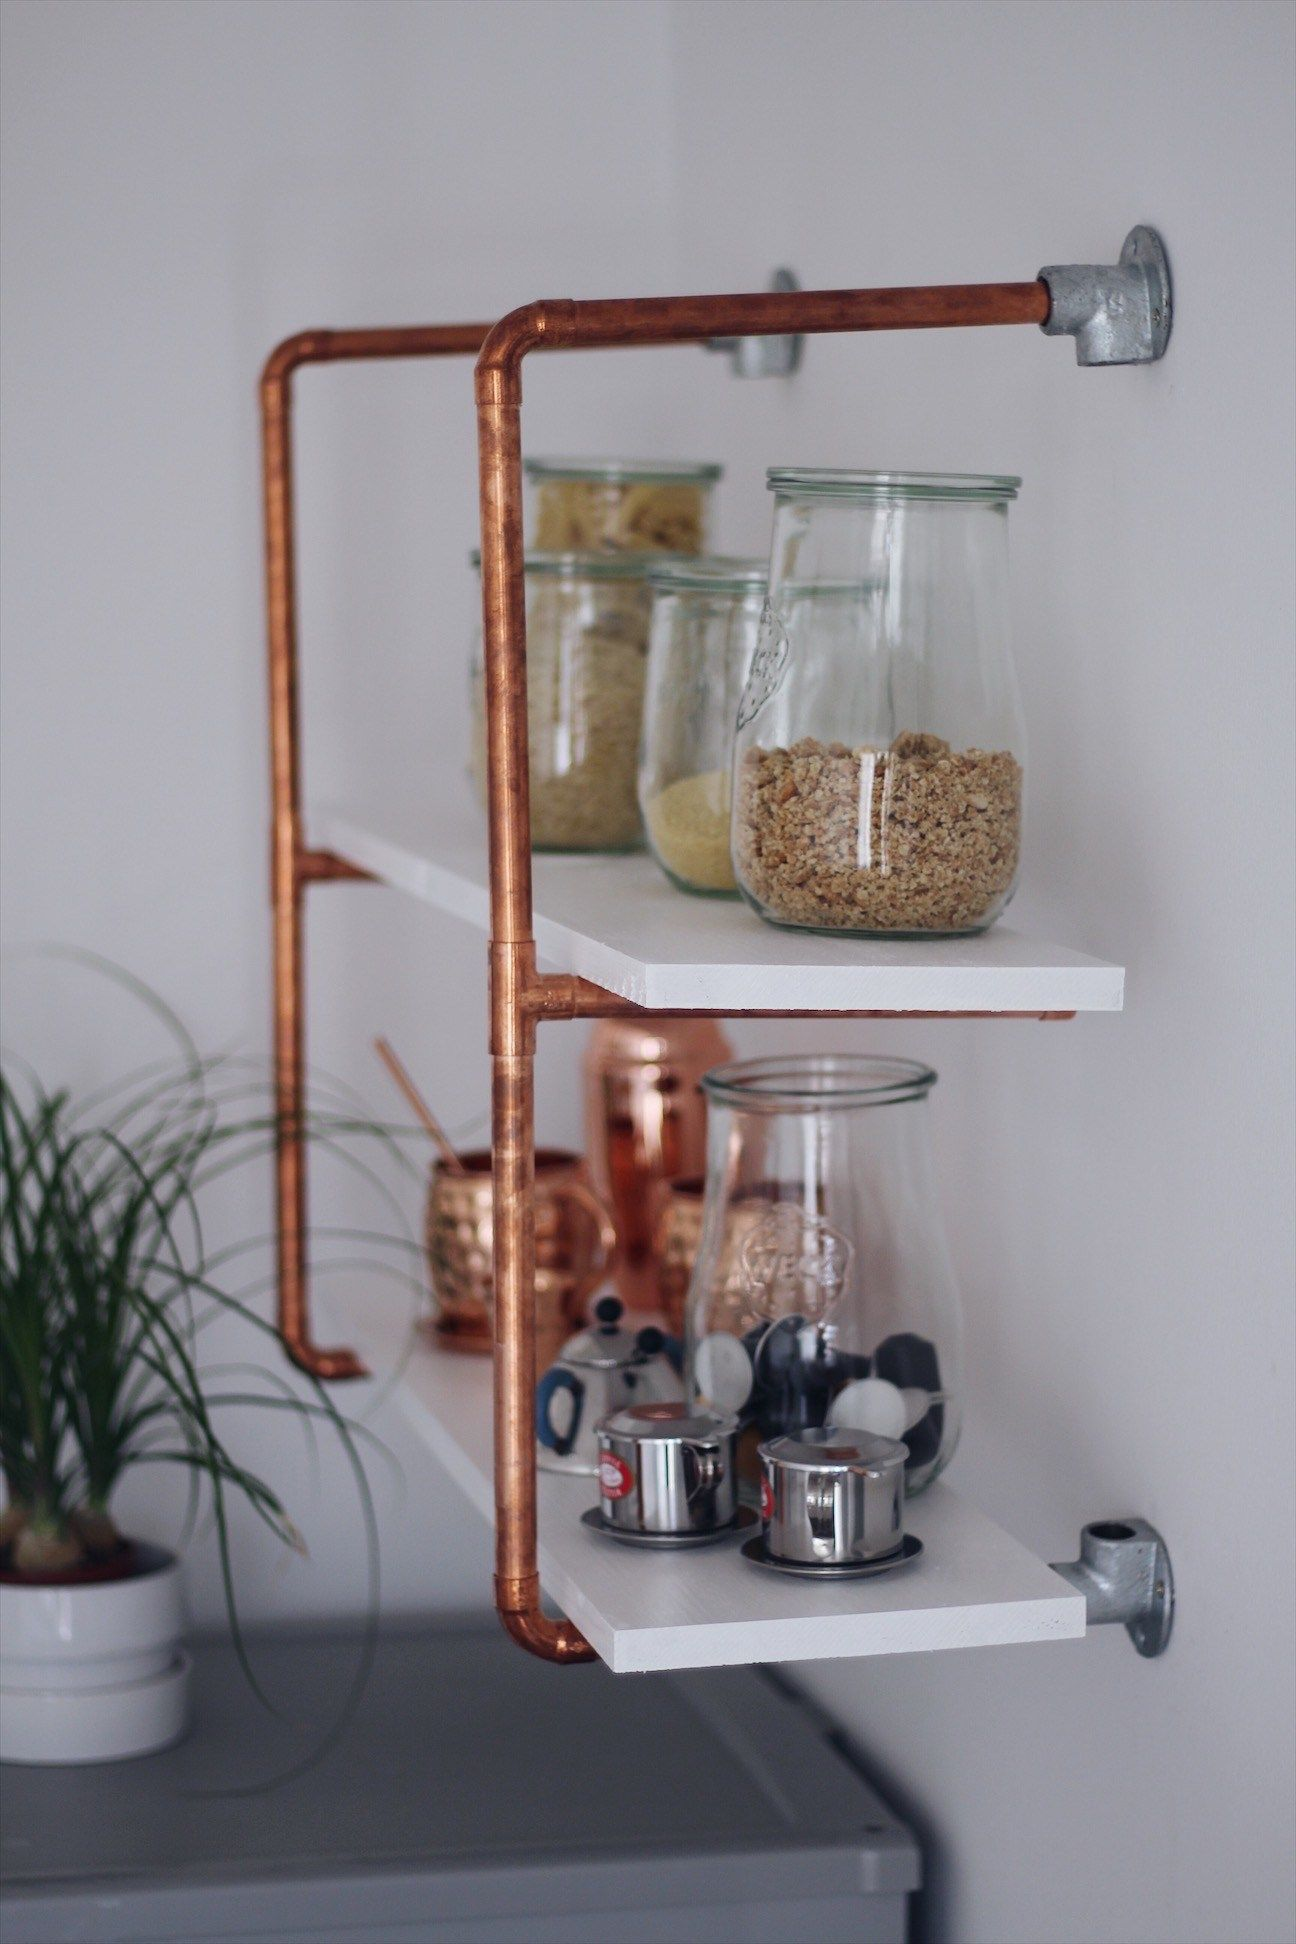 Selfmade Wohnideen Diy For Your Selfmade Copper Shelf Diy Anleitung Für